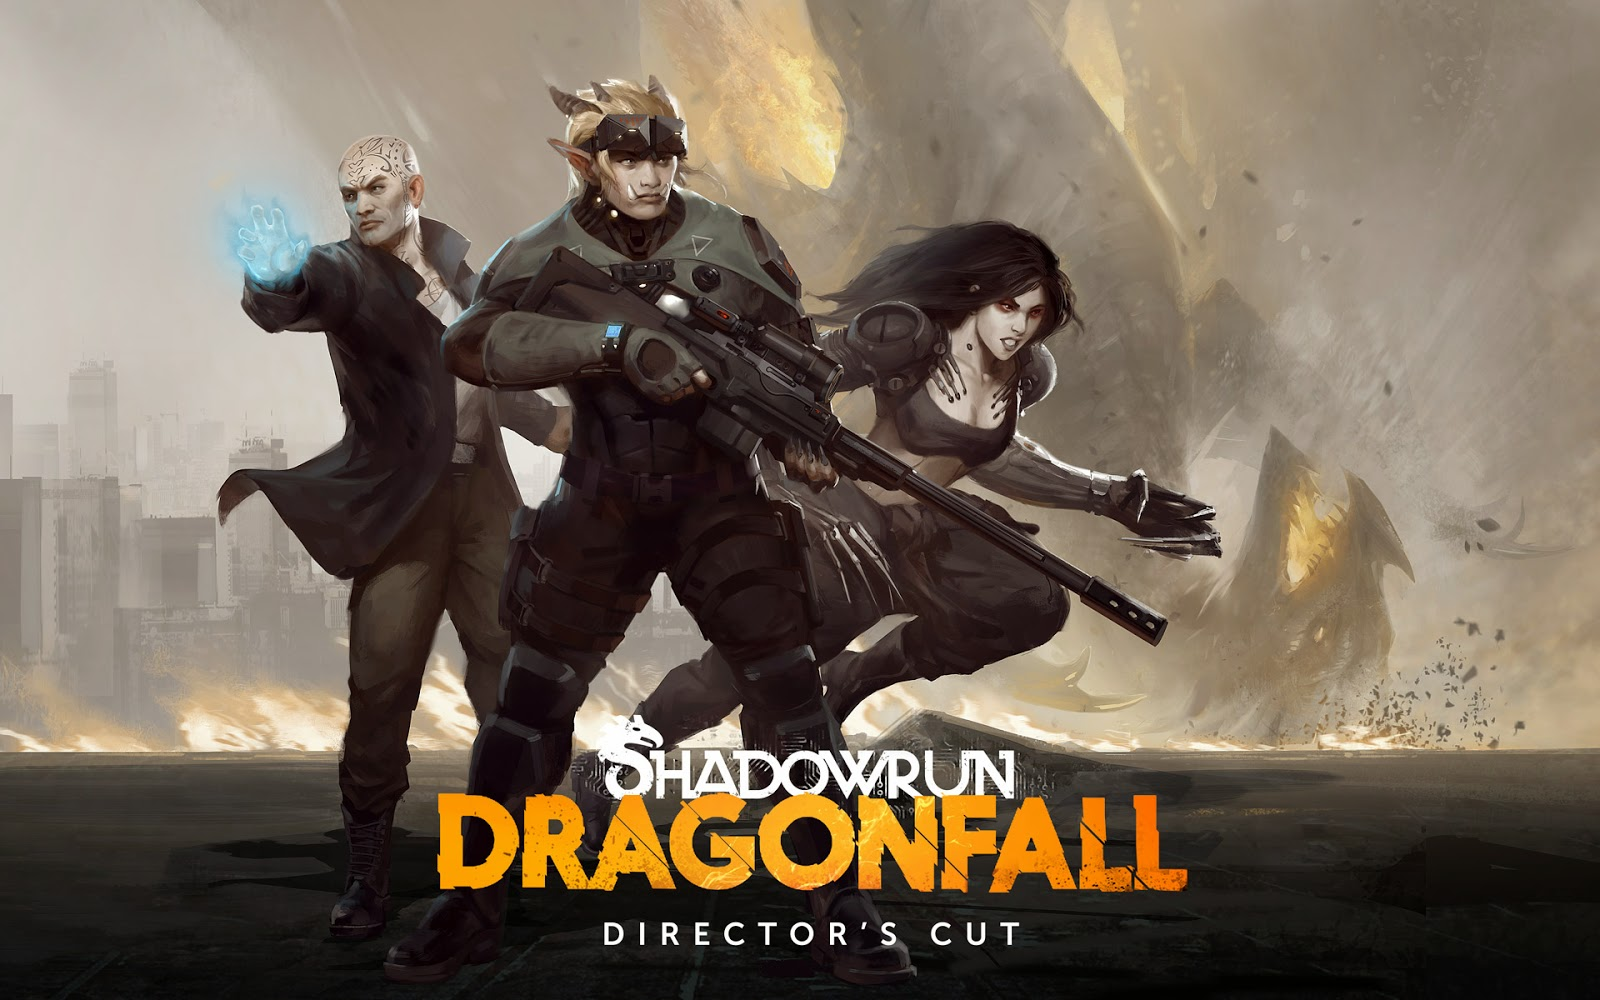 Shadowrun: Dragonfall Gameplay